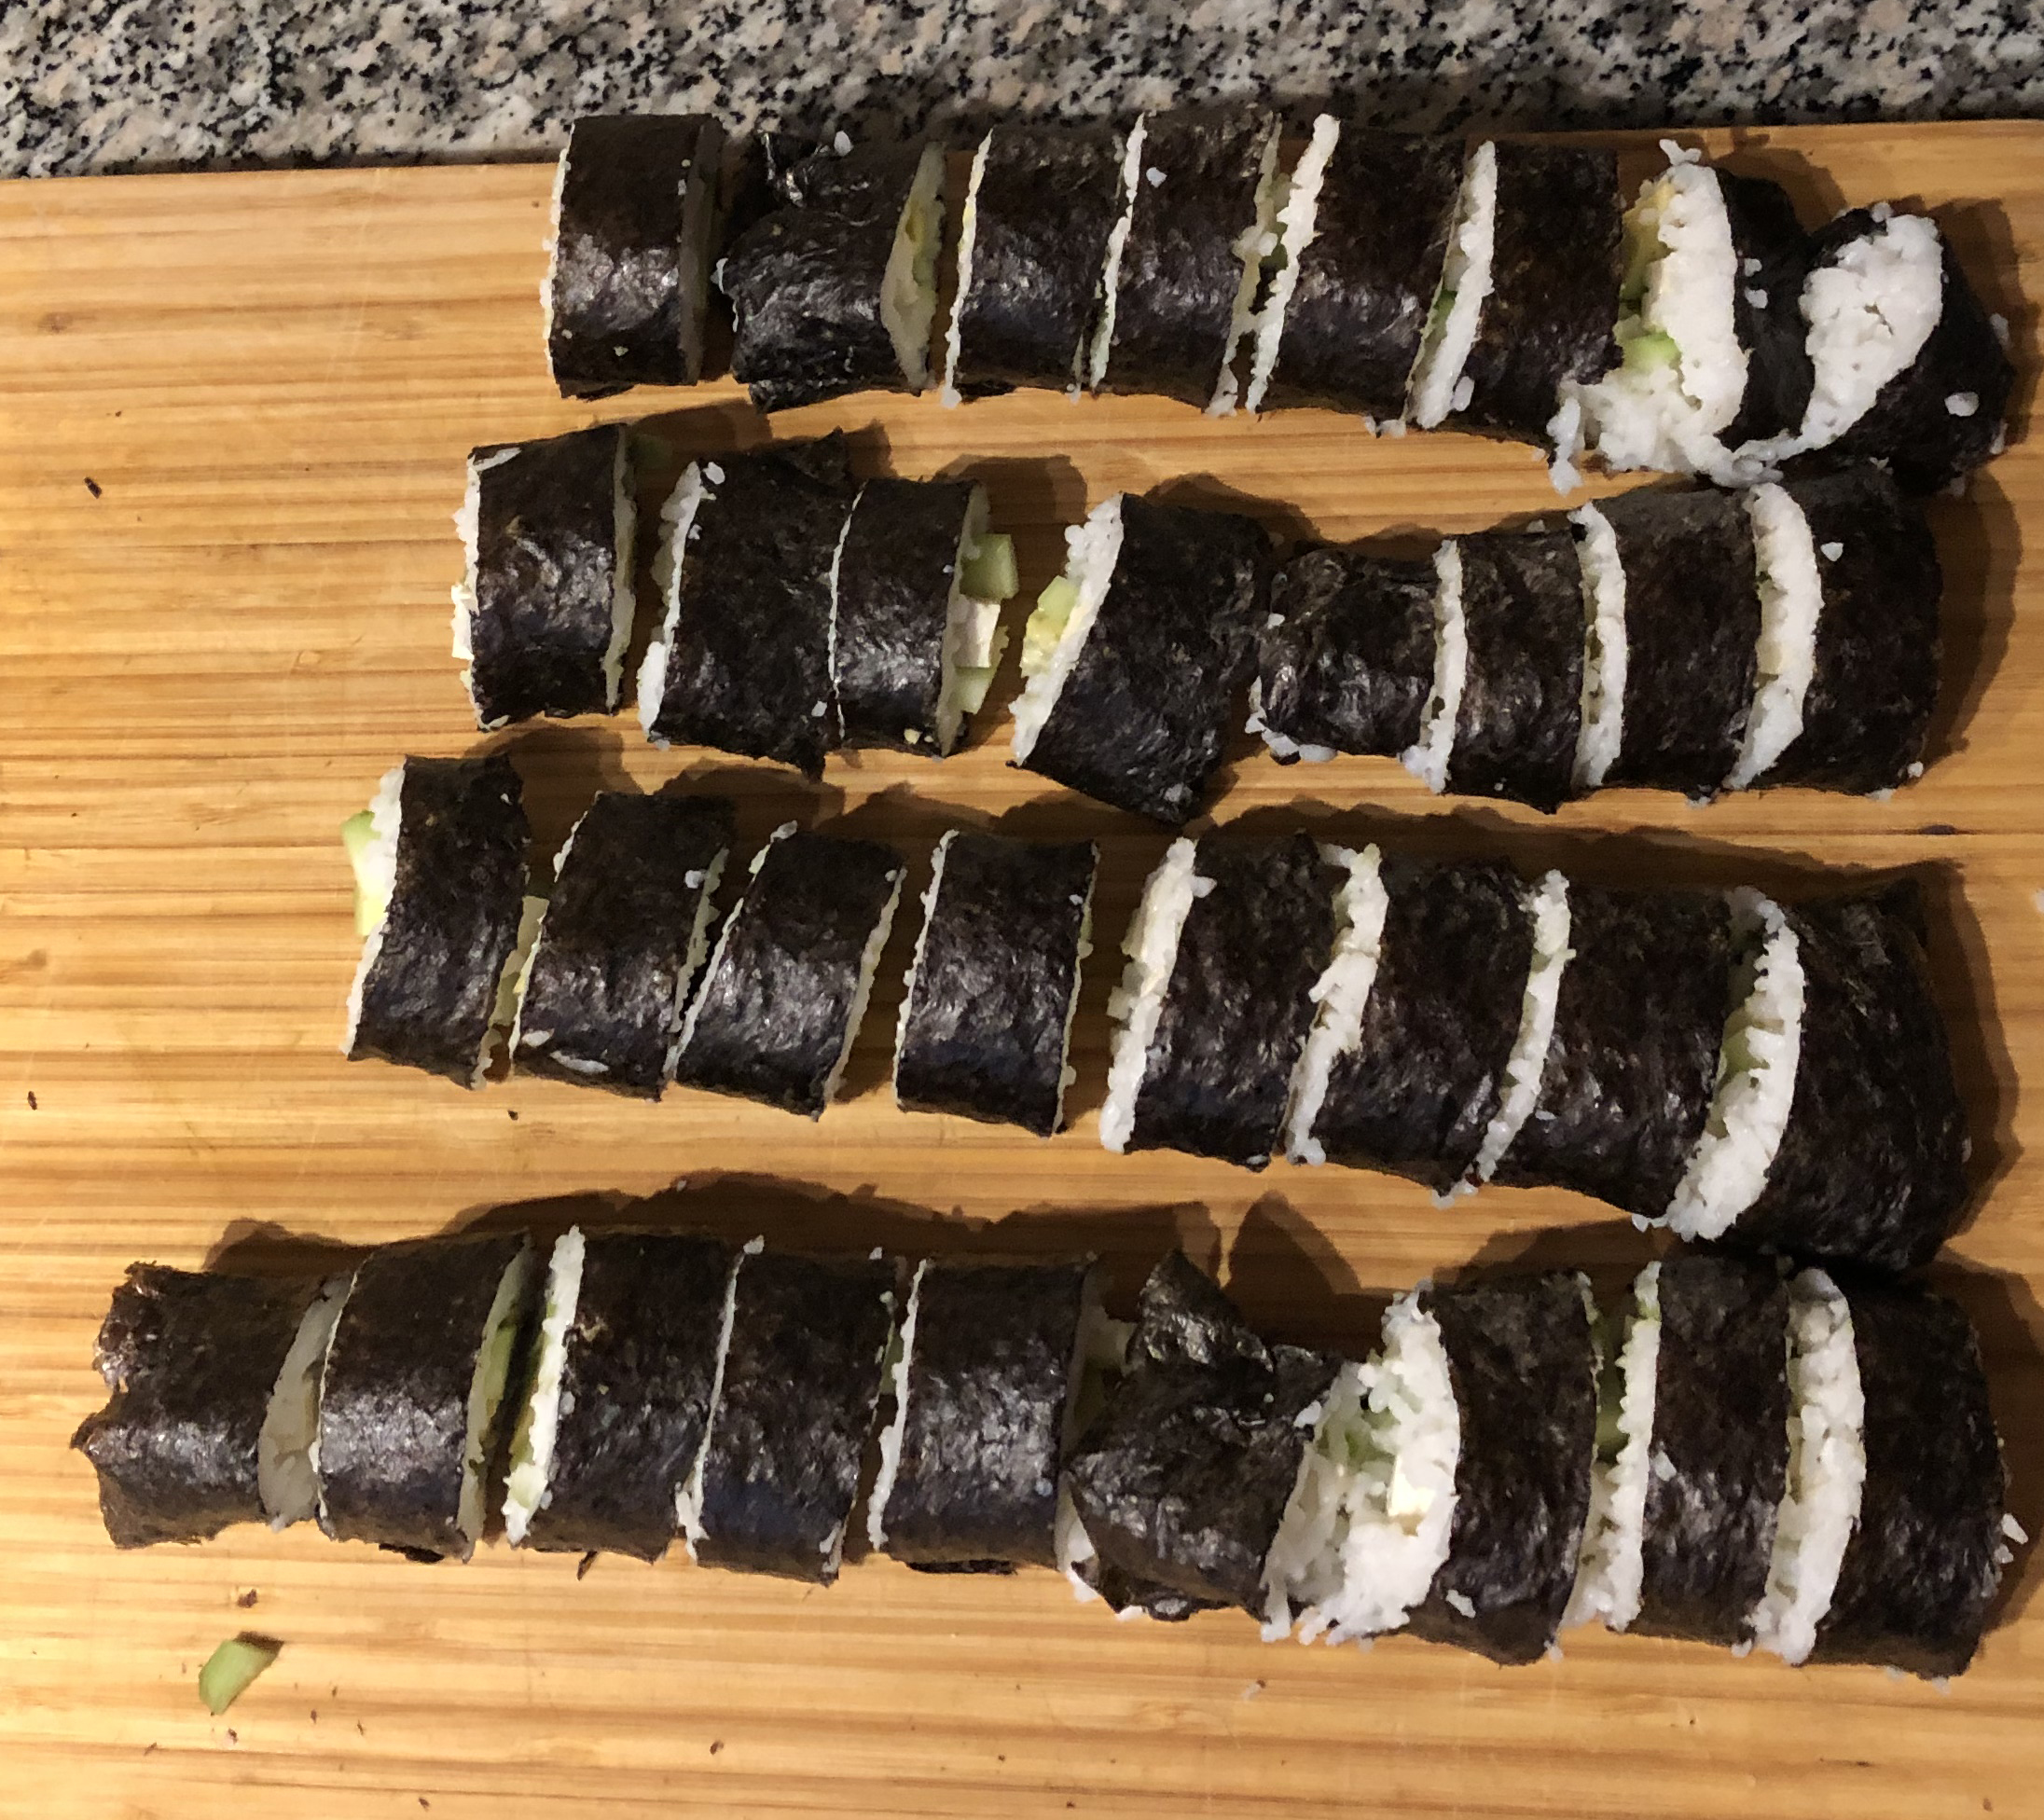 Dinner for Joe and his wife - cucumber nori rolls.